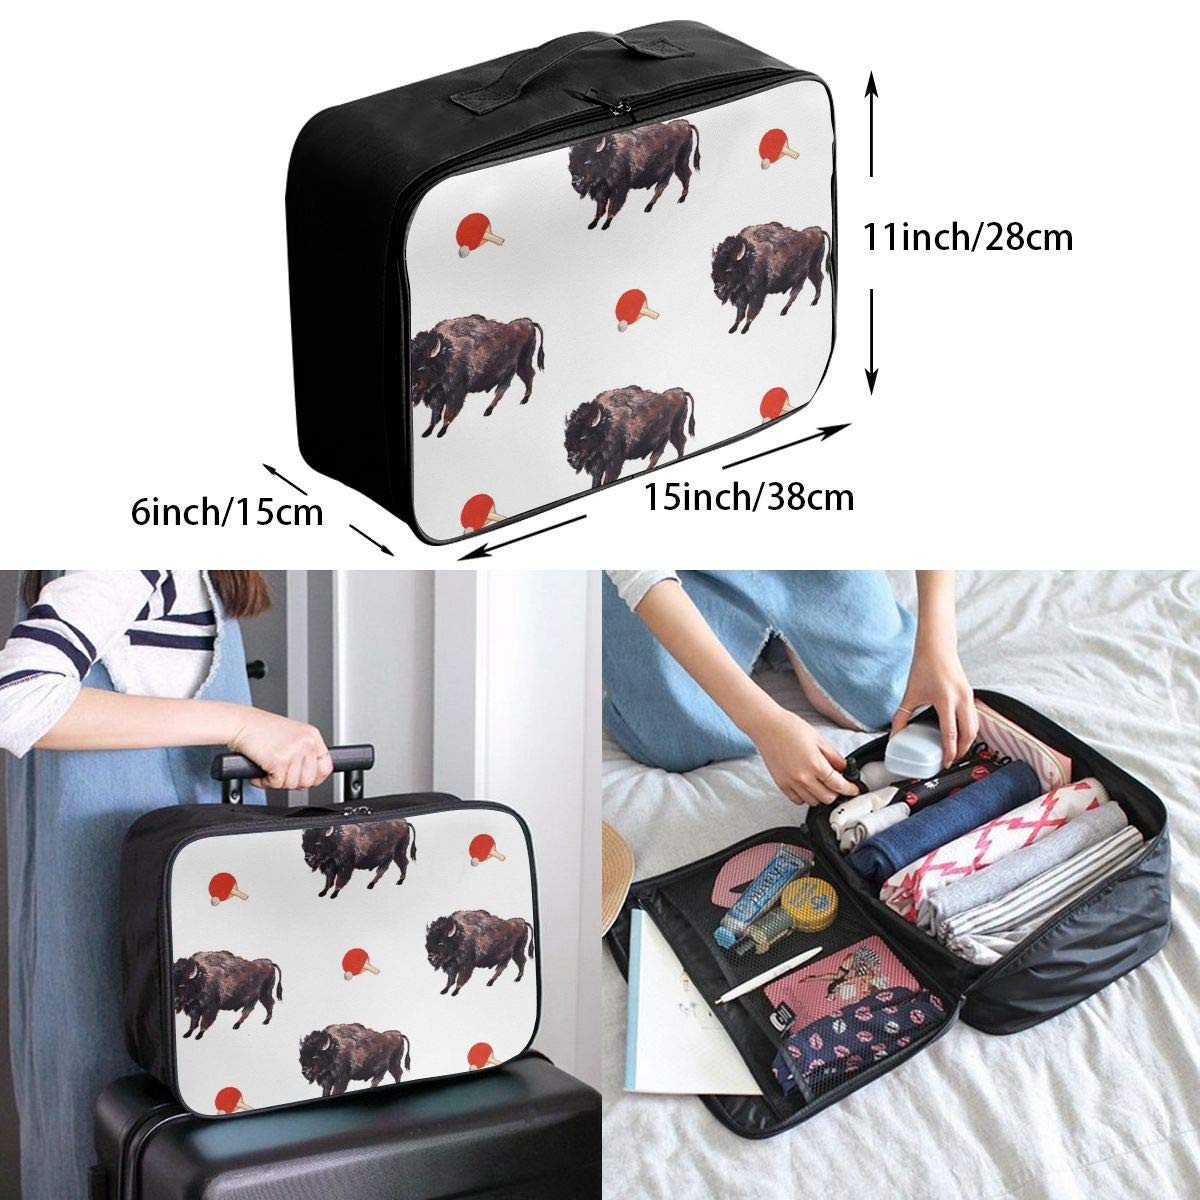 YueLJB Bison Table Tennis Lightweight Large Capacity Portable Luggage Bag Travel Duffel Bag Storage Carry Luggage Duffle Tote Bag